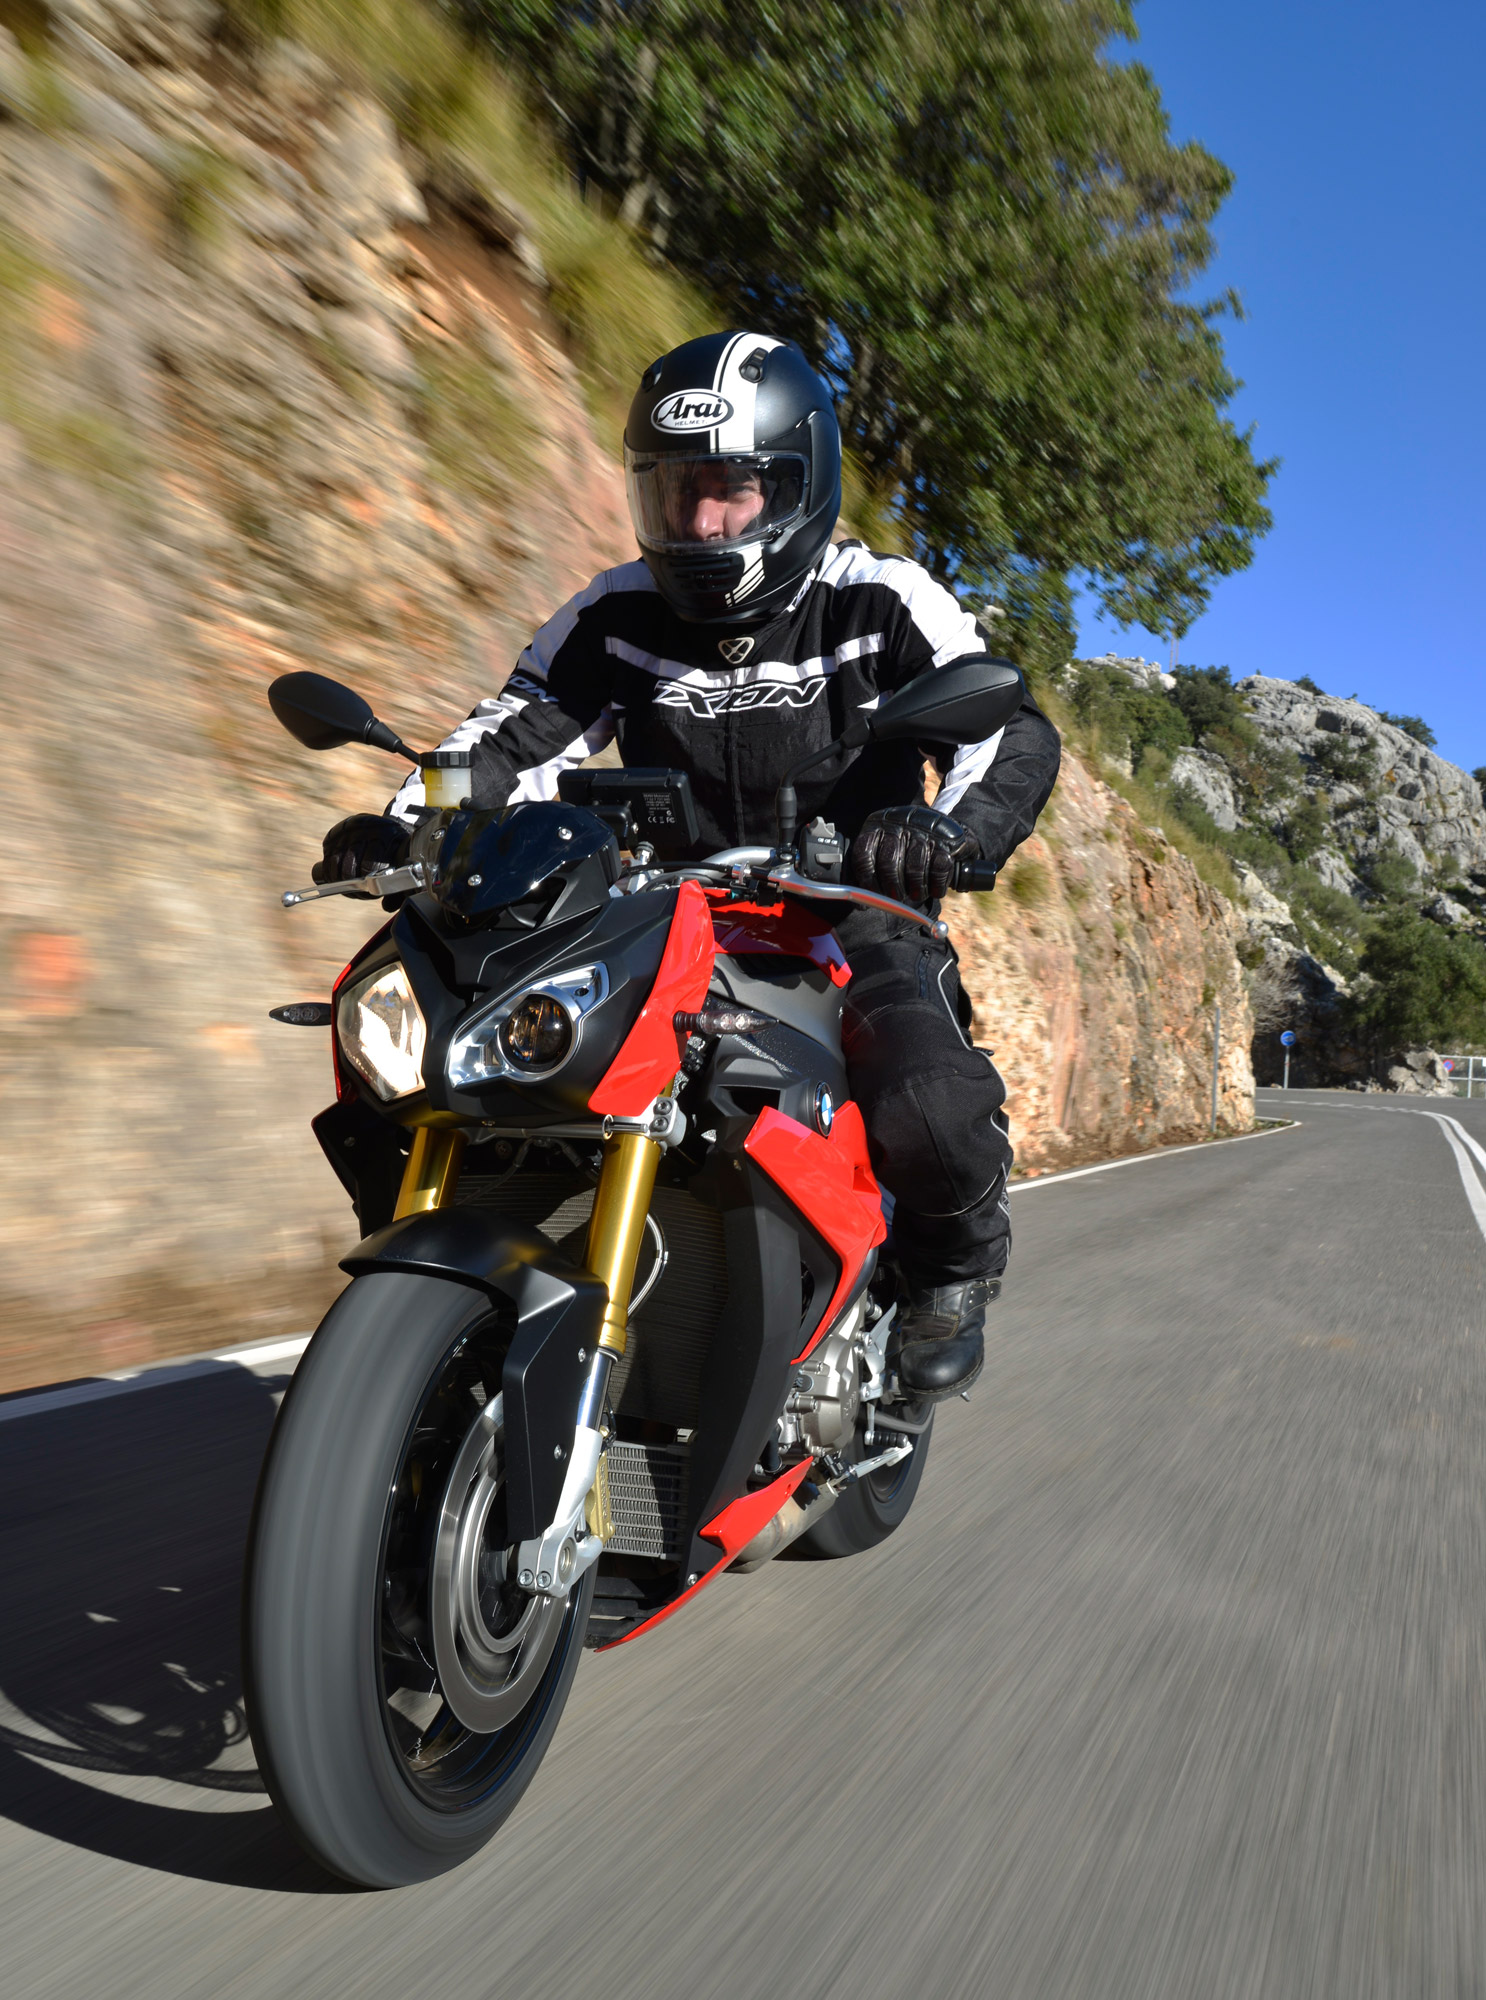 Bmw 2014 S1000r Spanish Launch Canada Moto Guide Wiring Harness In Early Prototypes Were A Little Too Wild For Production